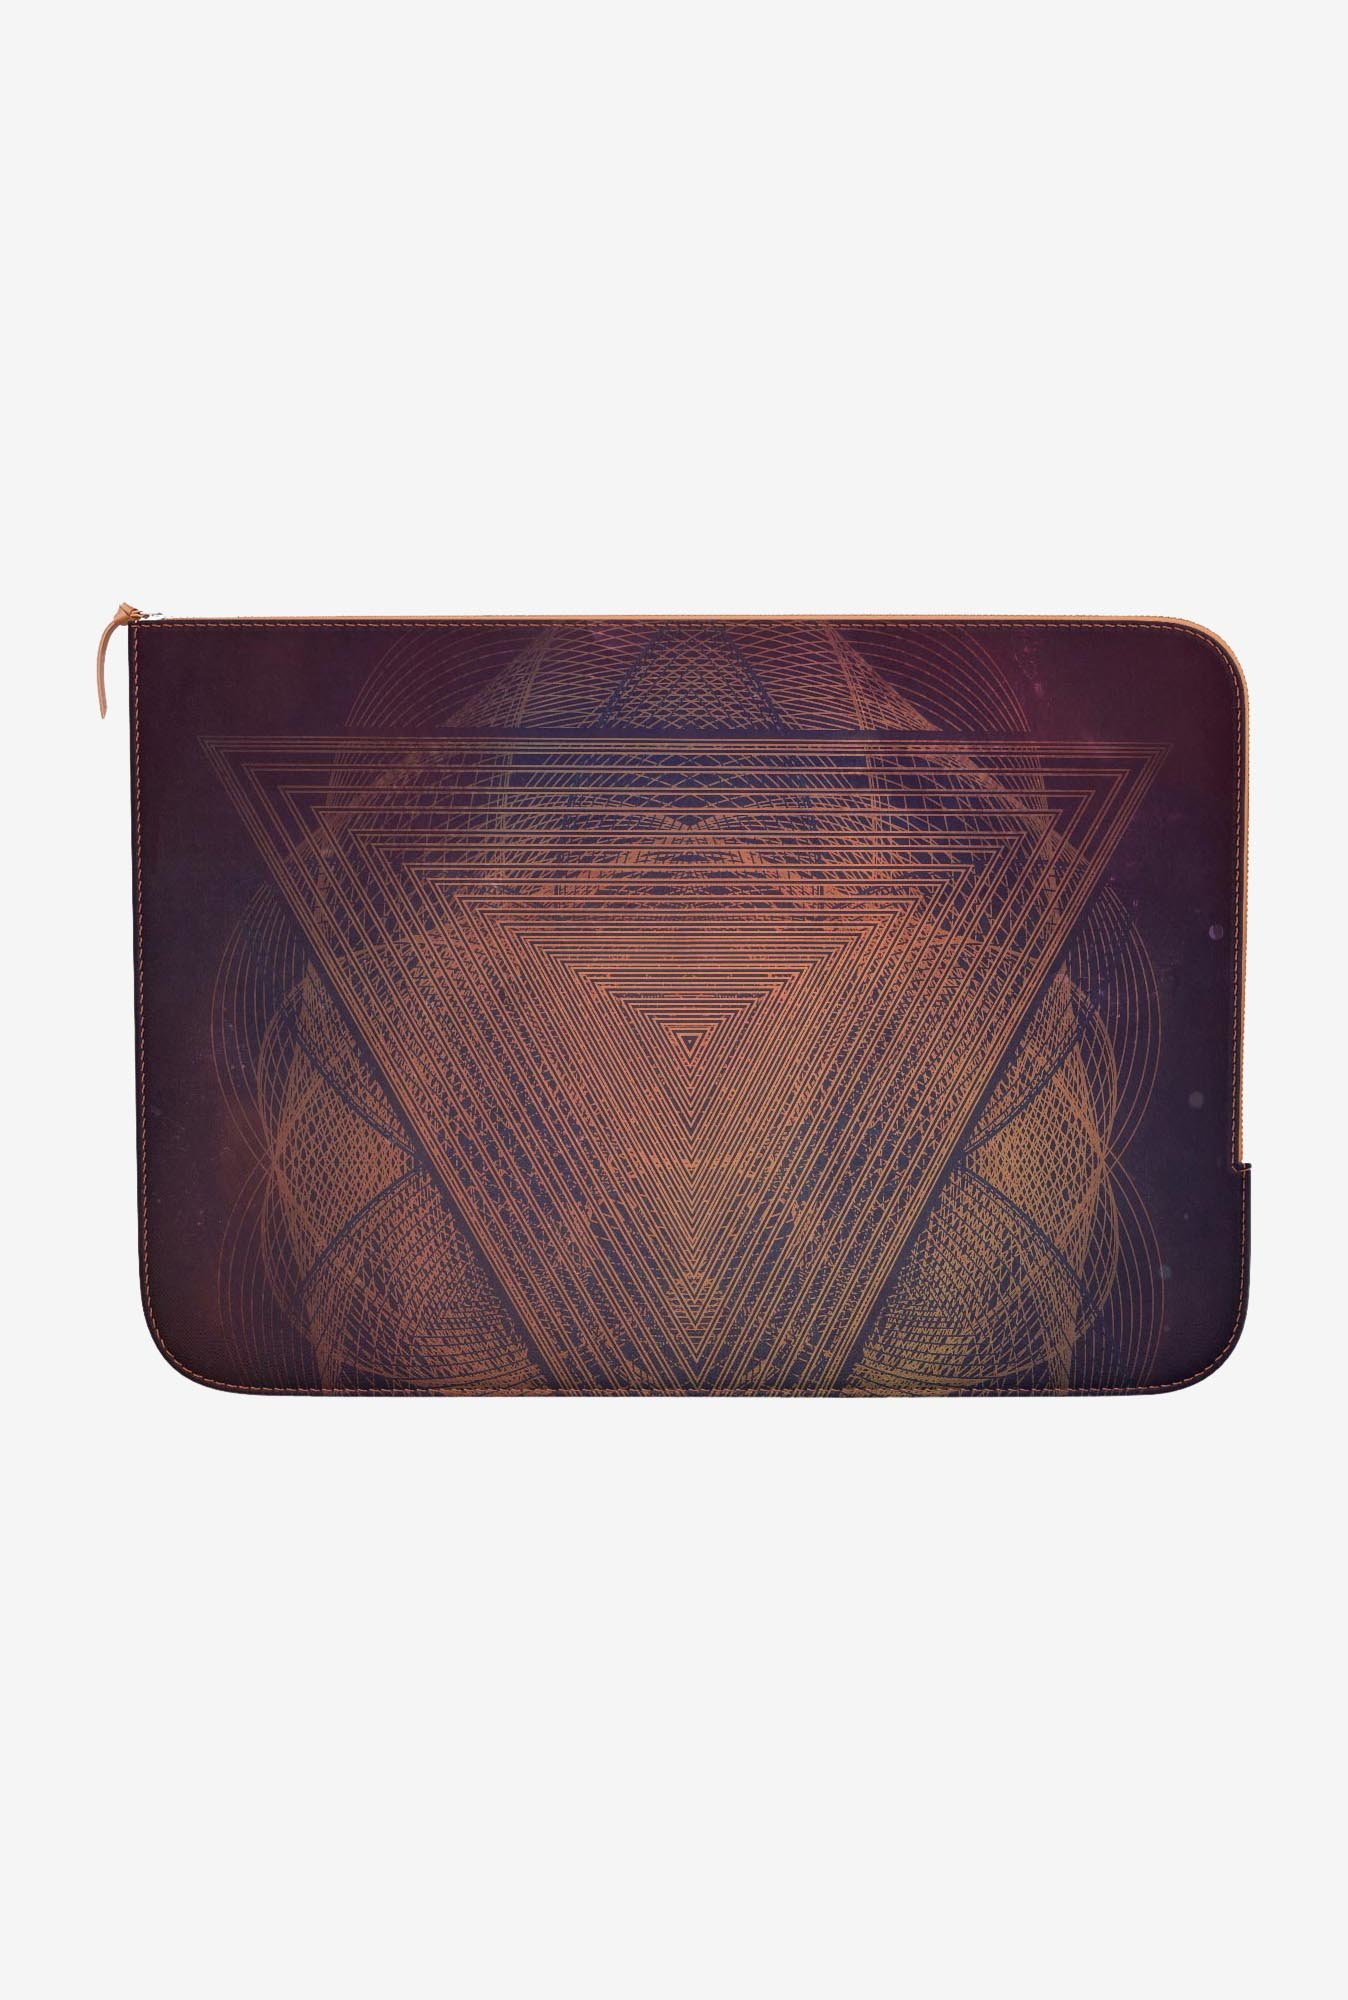 "DailyObjects Syyrce Macbook Air 11"" Zippered Sleeve"